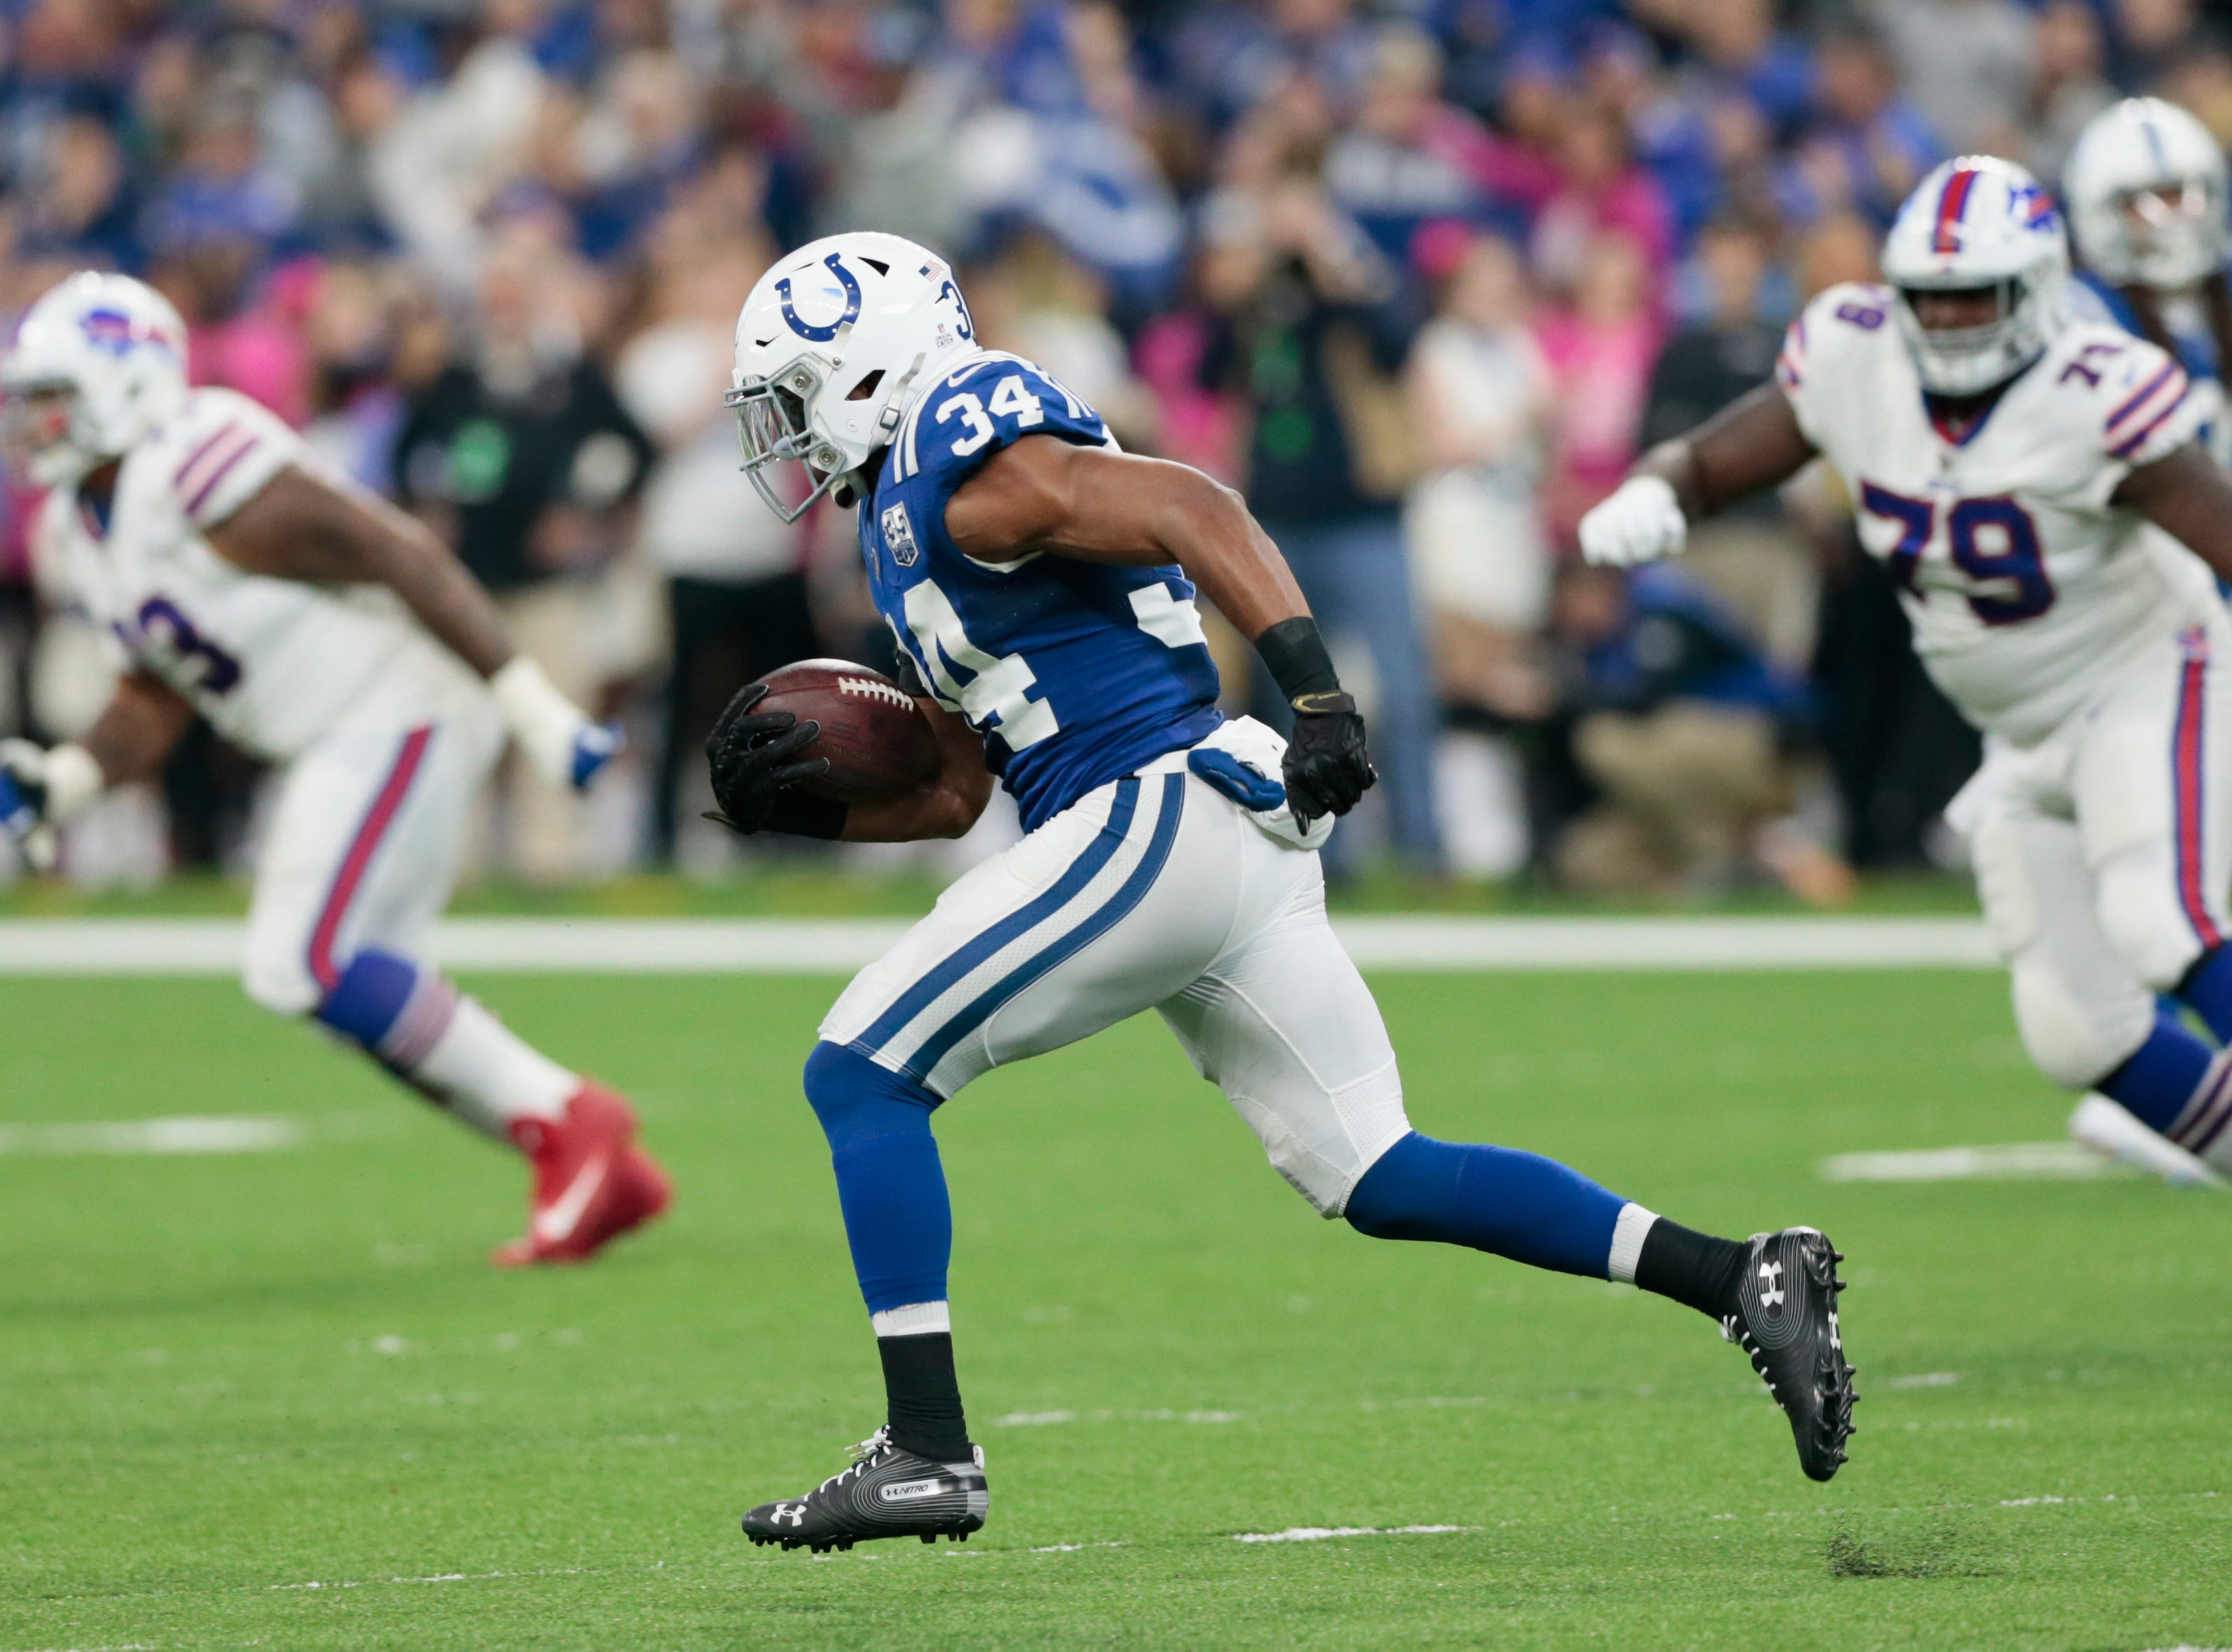 Indianapolis Colts defensive back Mike Mitchell (34) returns an interception against the Buffalo Bills during the first half of an NFL football game in Indianapolis, Sunday, Oct. 21, 2018. (AP Photo/AJ Mast)